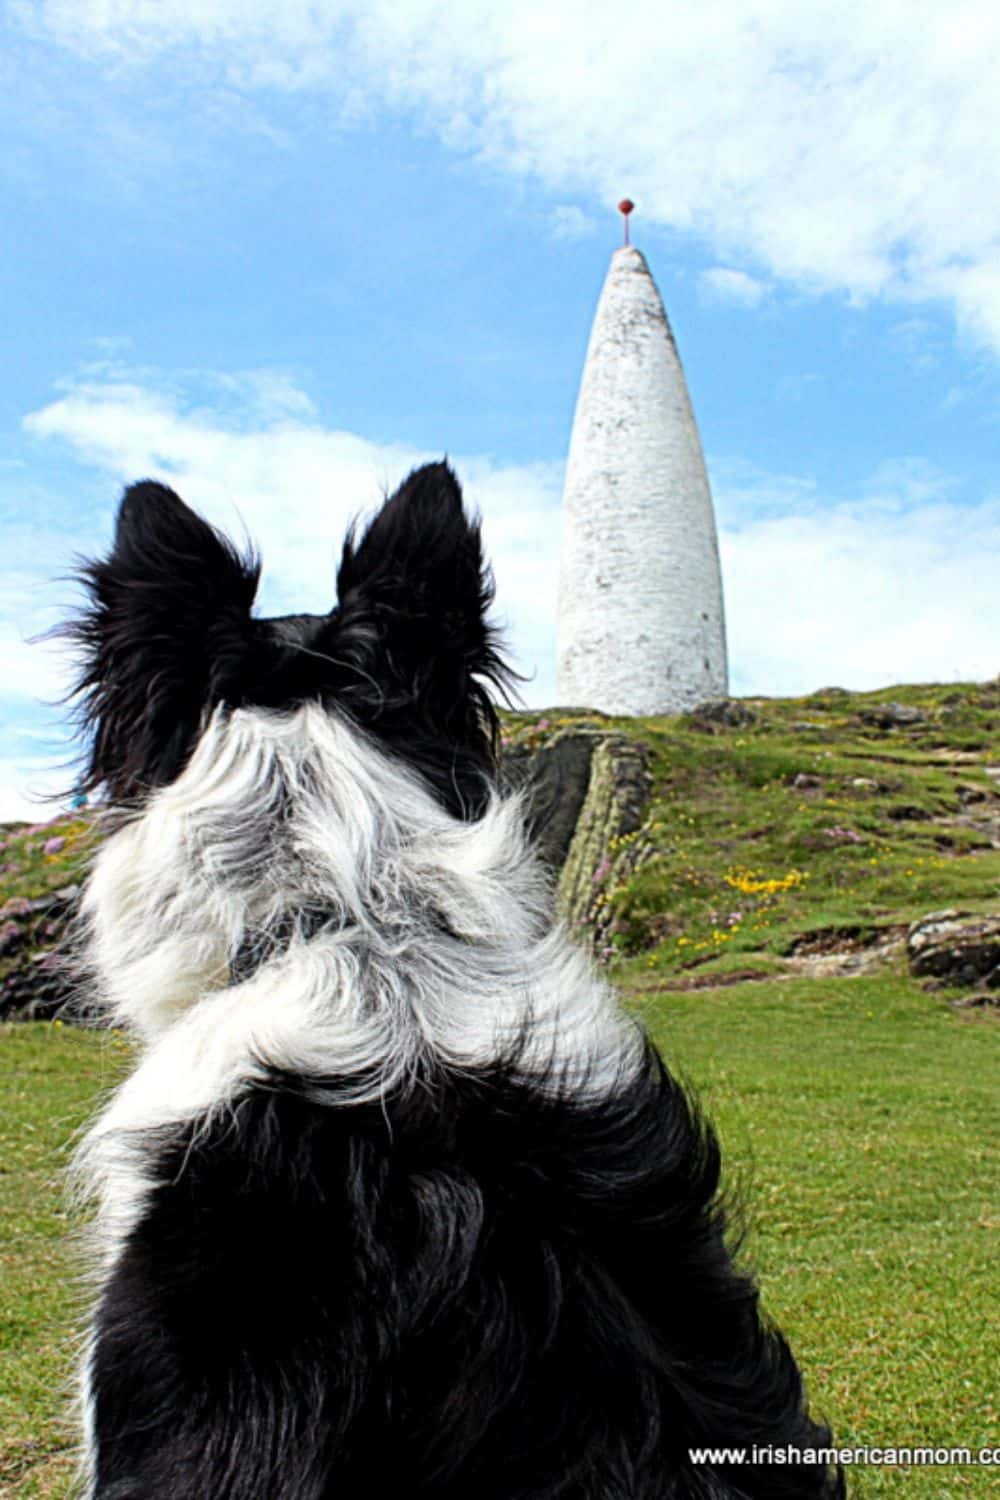 A black and white border collie looks at the Beacon monument in Baltimore County Cork